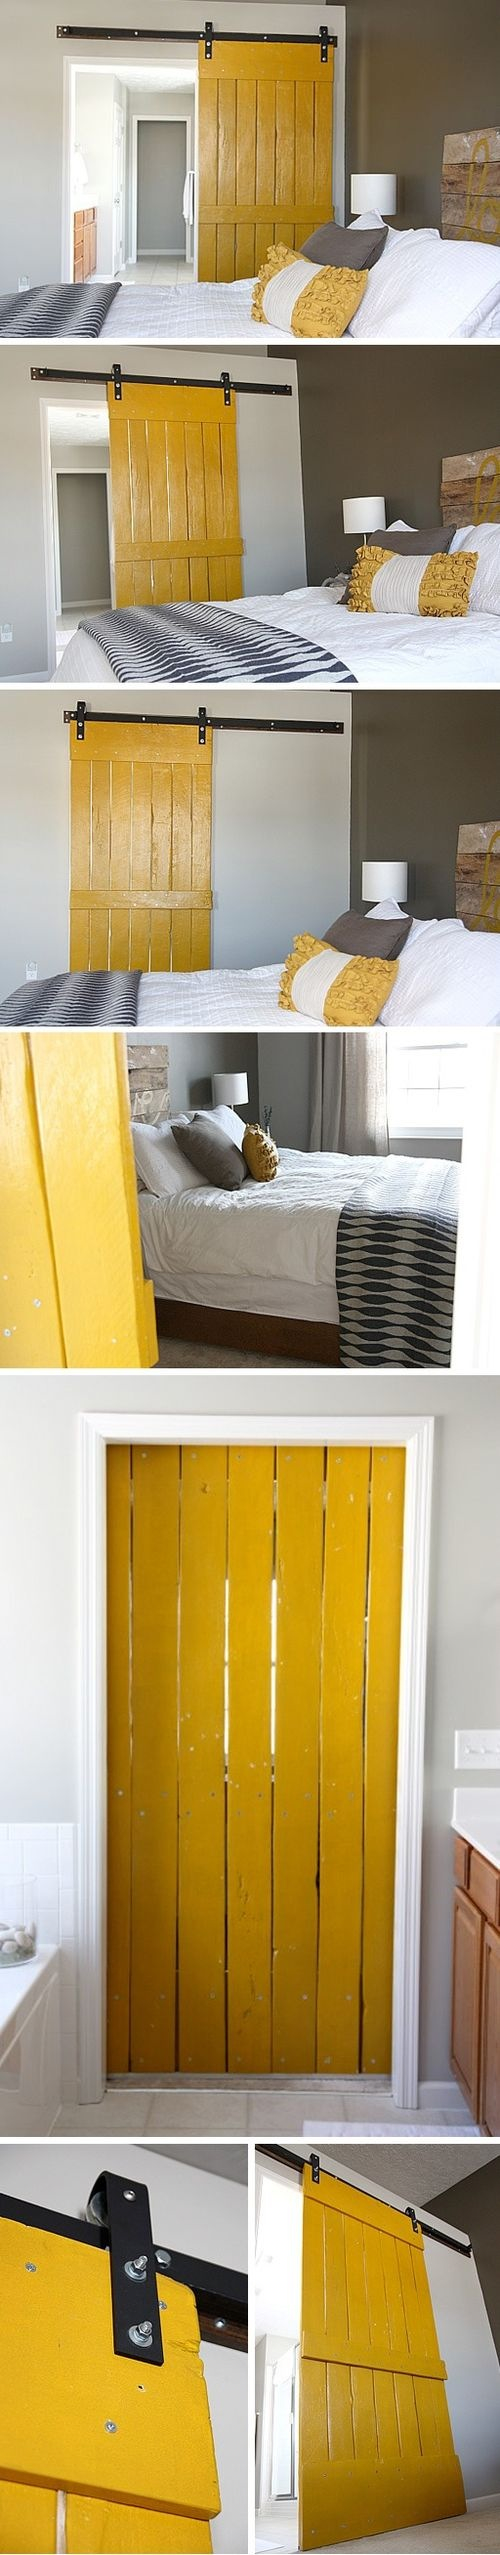 Before & After--The Big Bedroom | Smart storage, Barn doors and ...